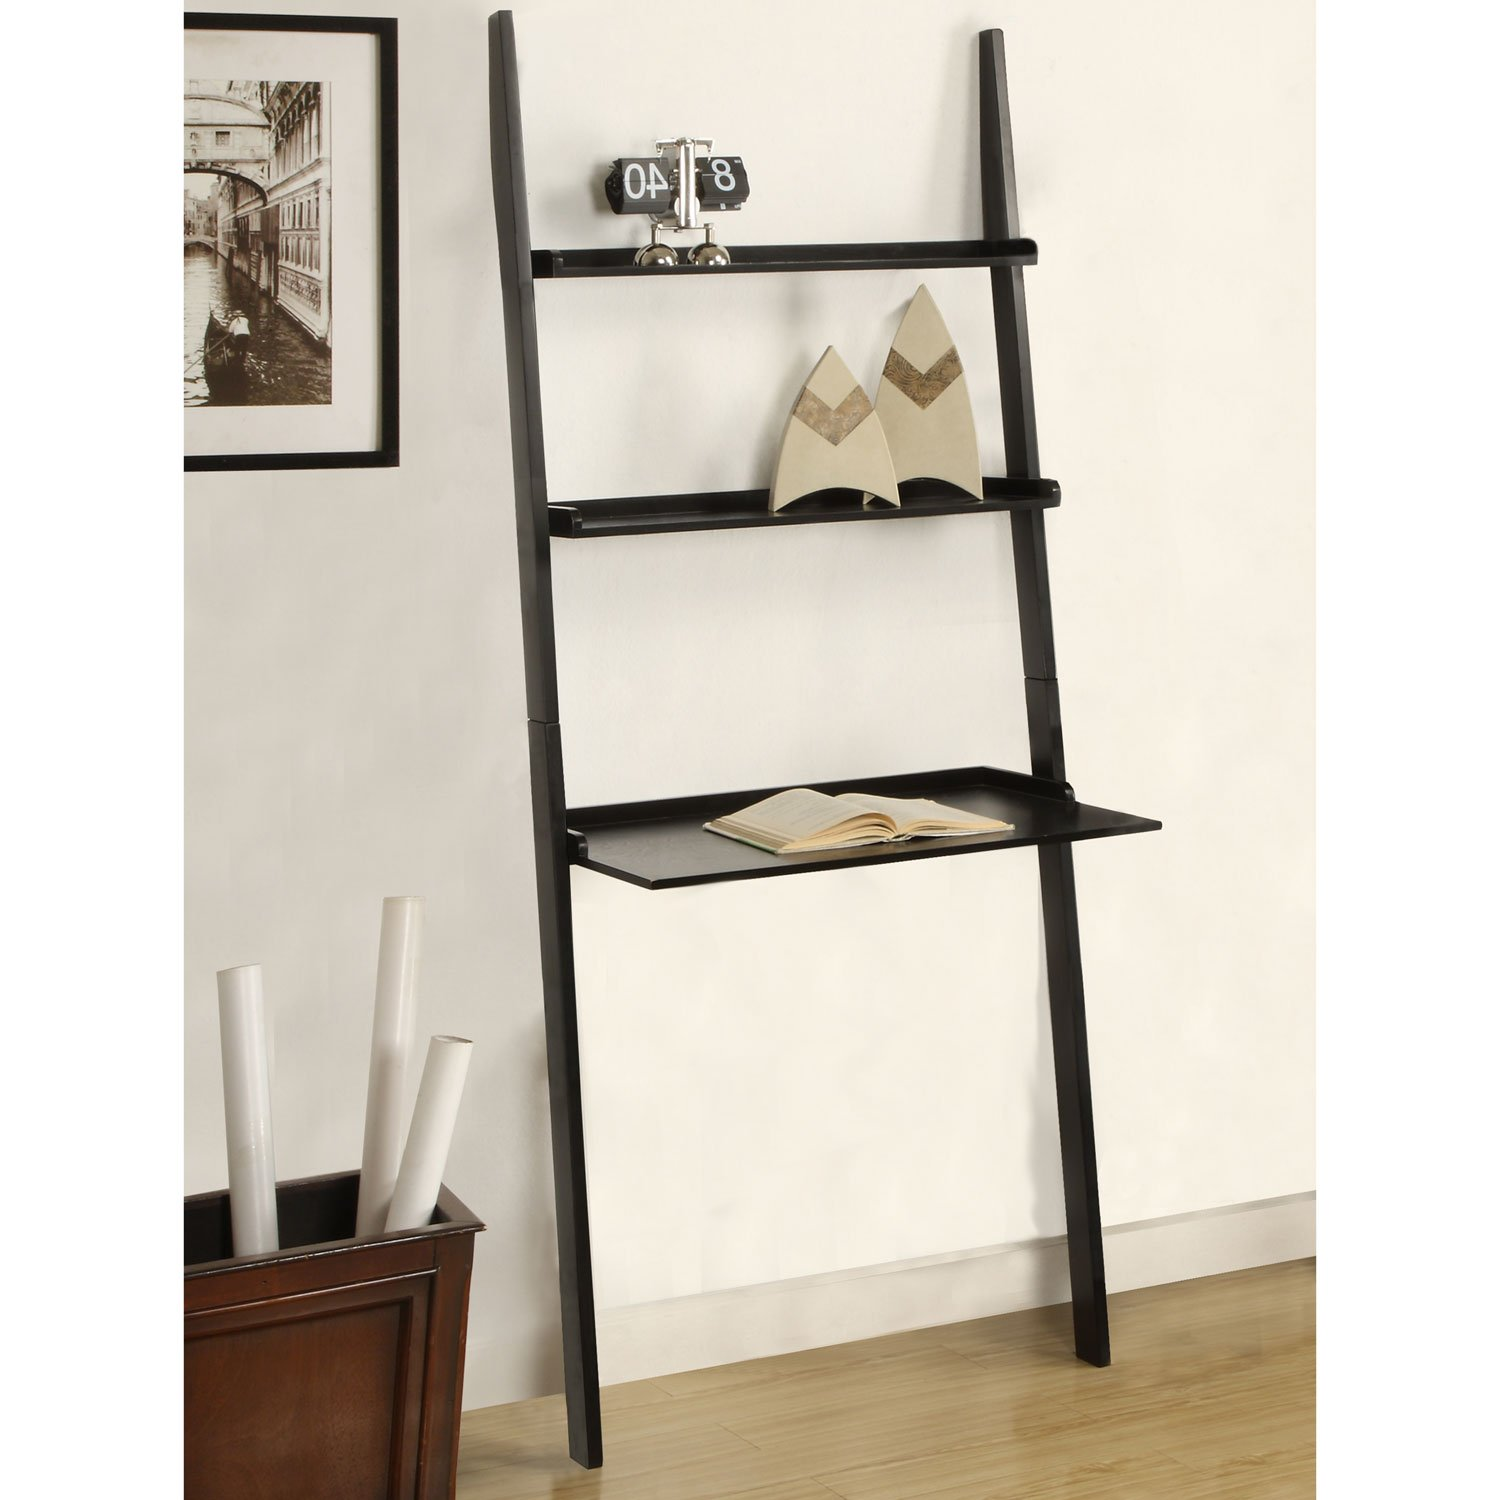 Style Leaning Ladder Desk with Book Shelves Laptop Computer Leaning